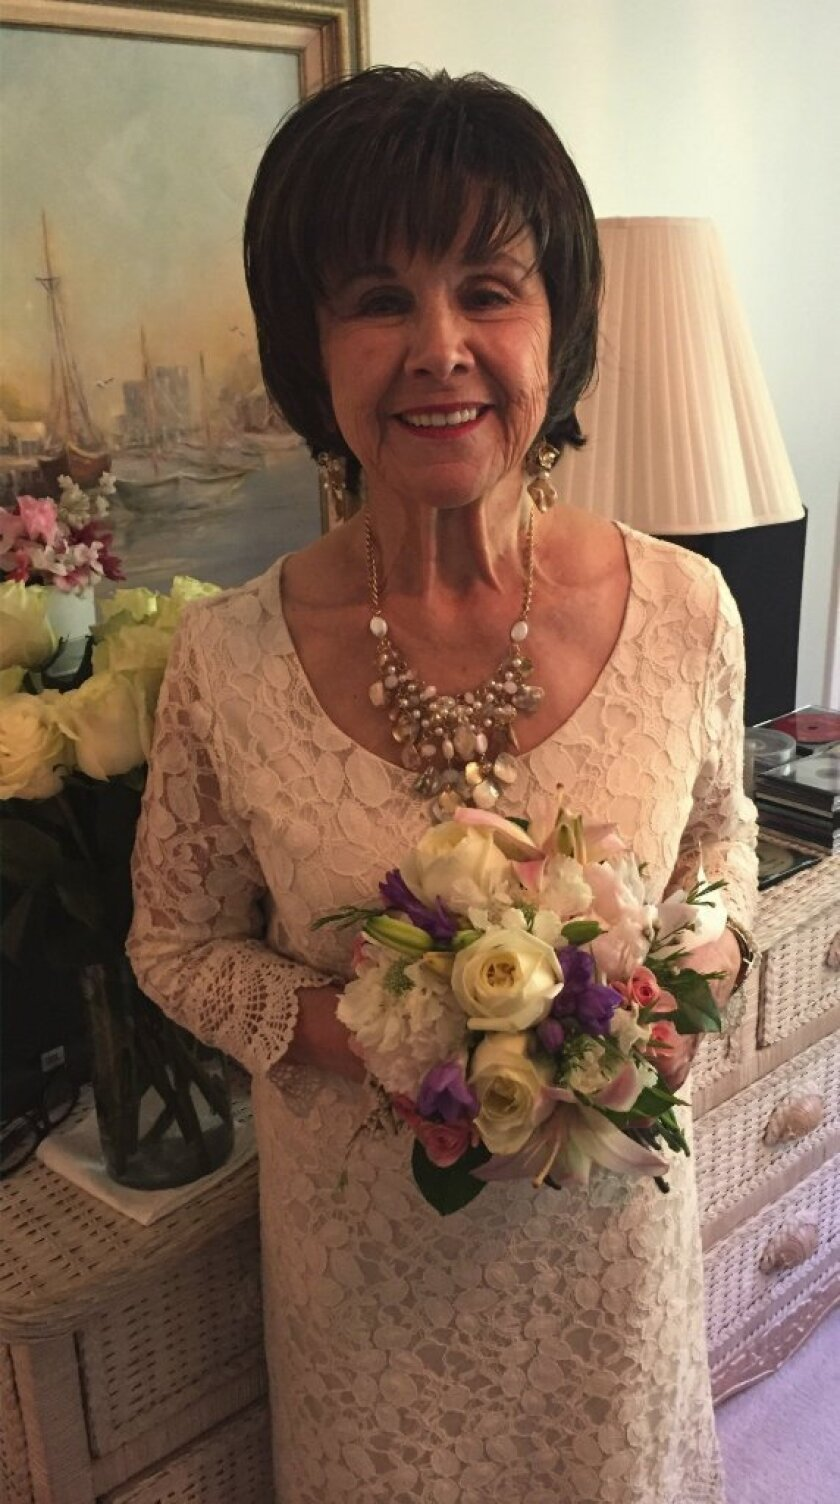 Angie Osborn on her wedding day in Utah. Courtesy photo